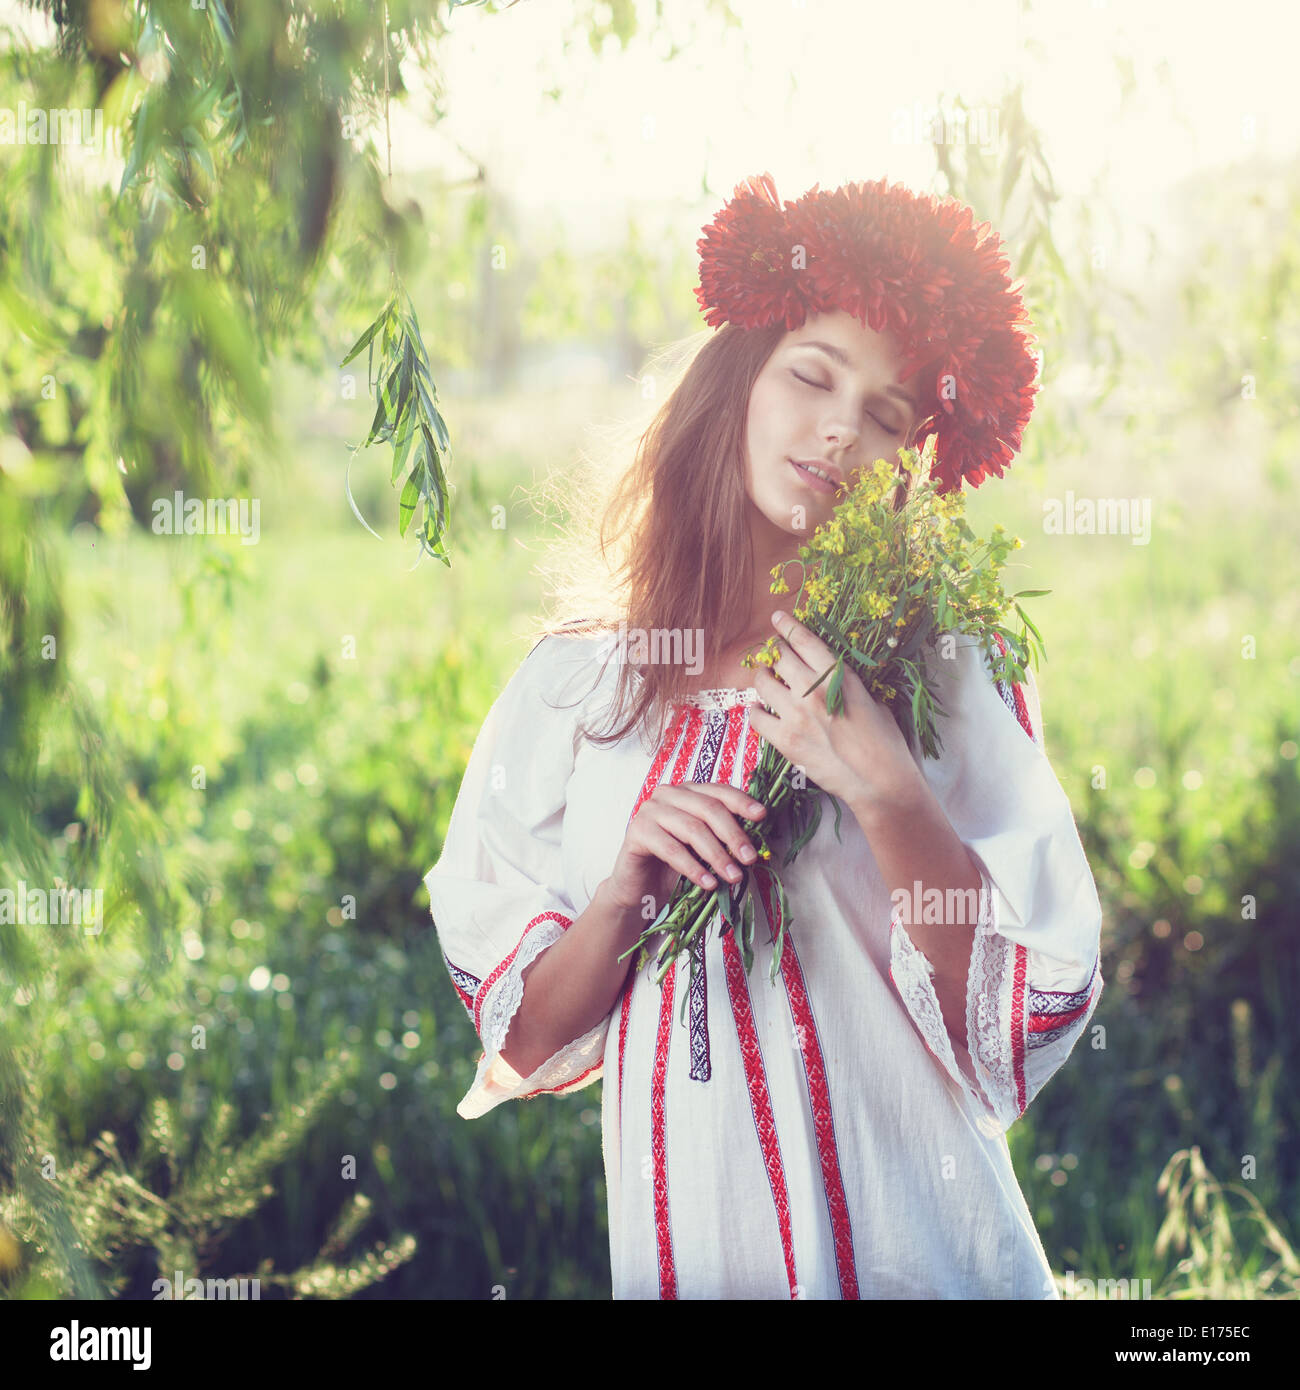 Emotional portrait of ukranian woman with bouquet of flowers - Stock Image